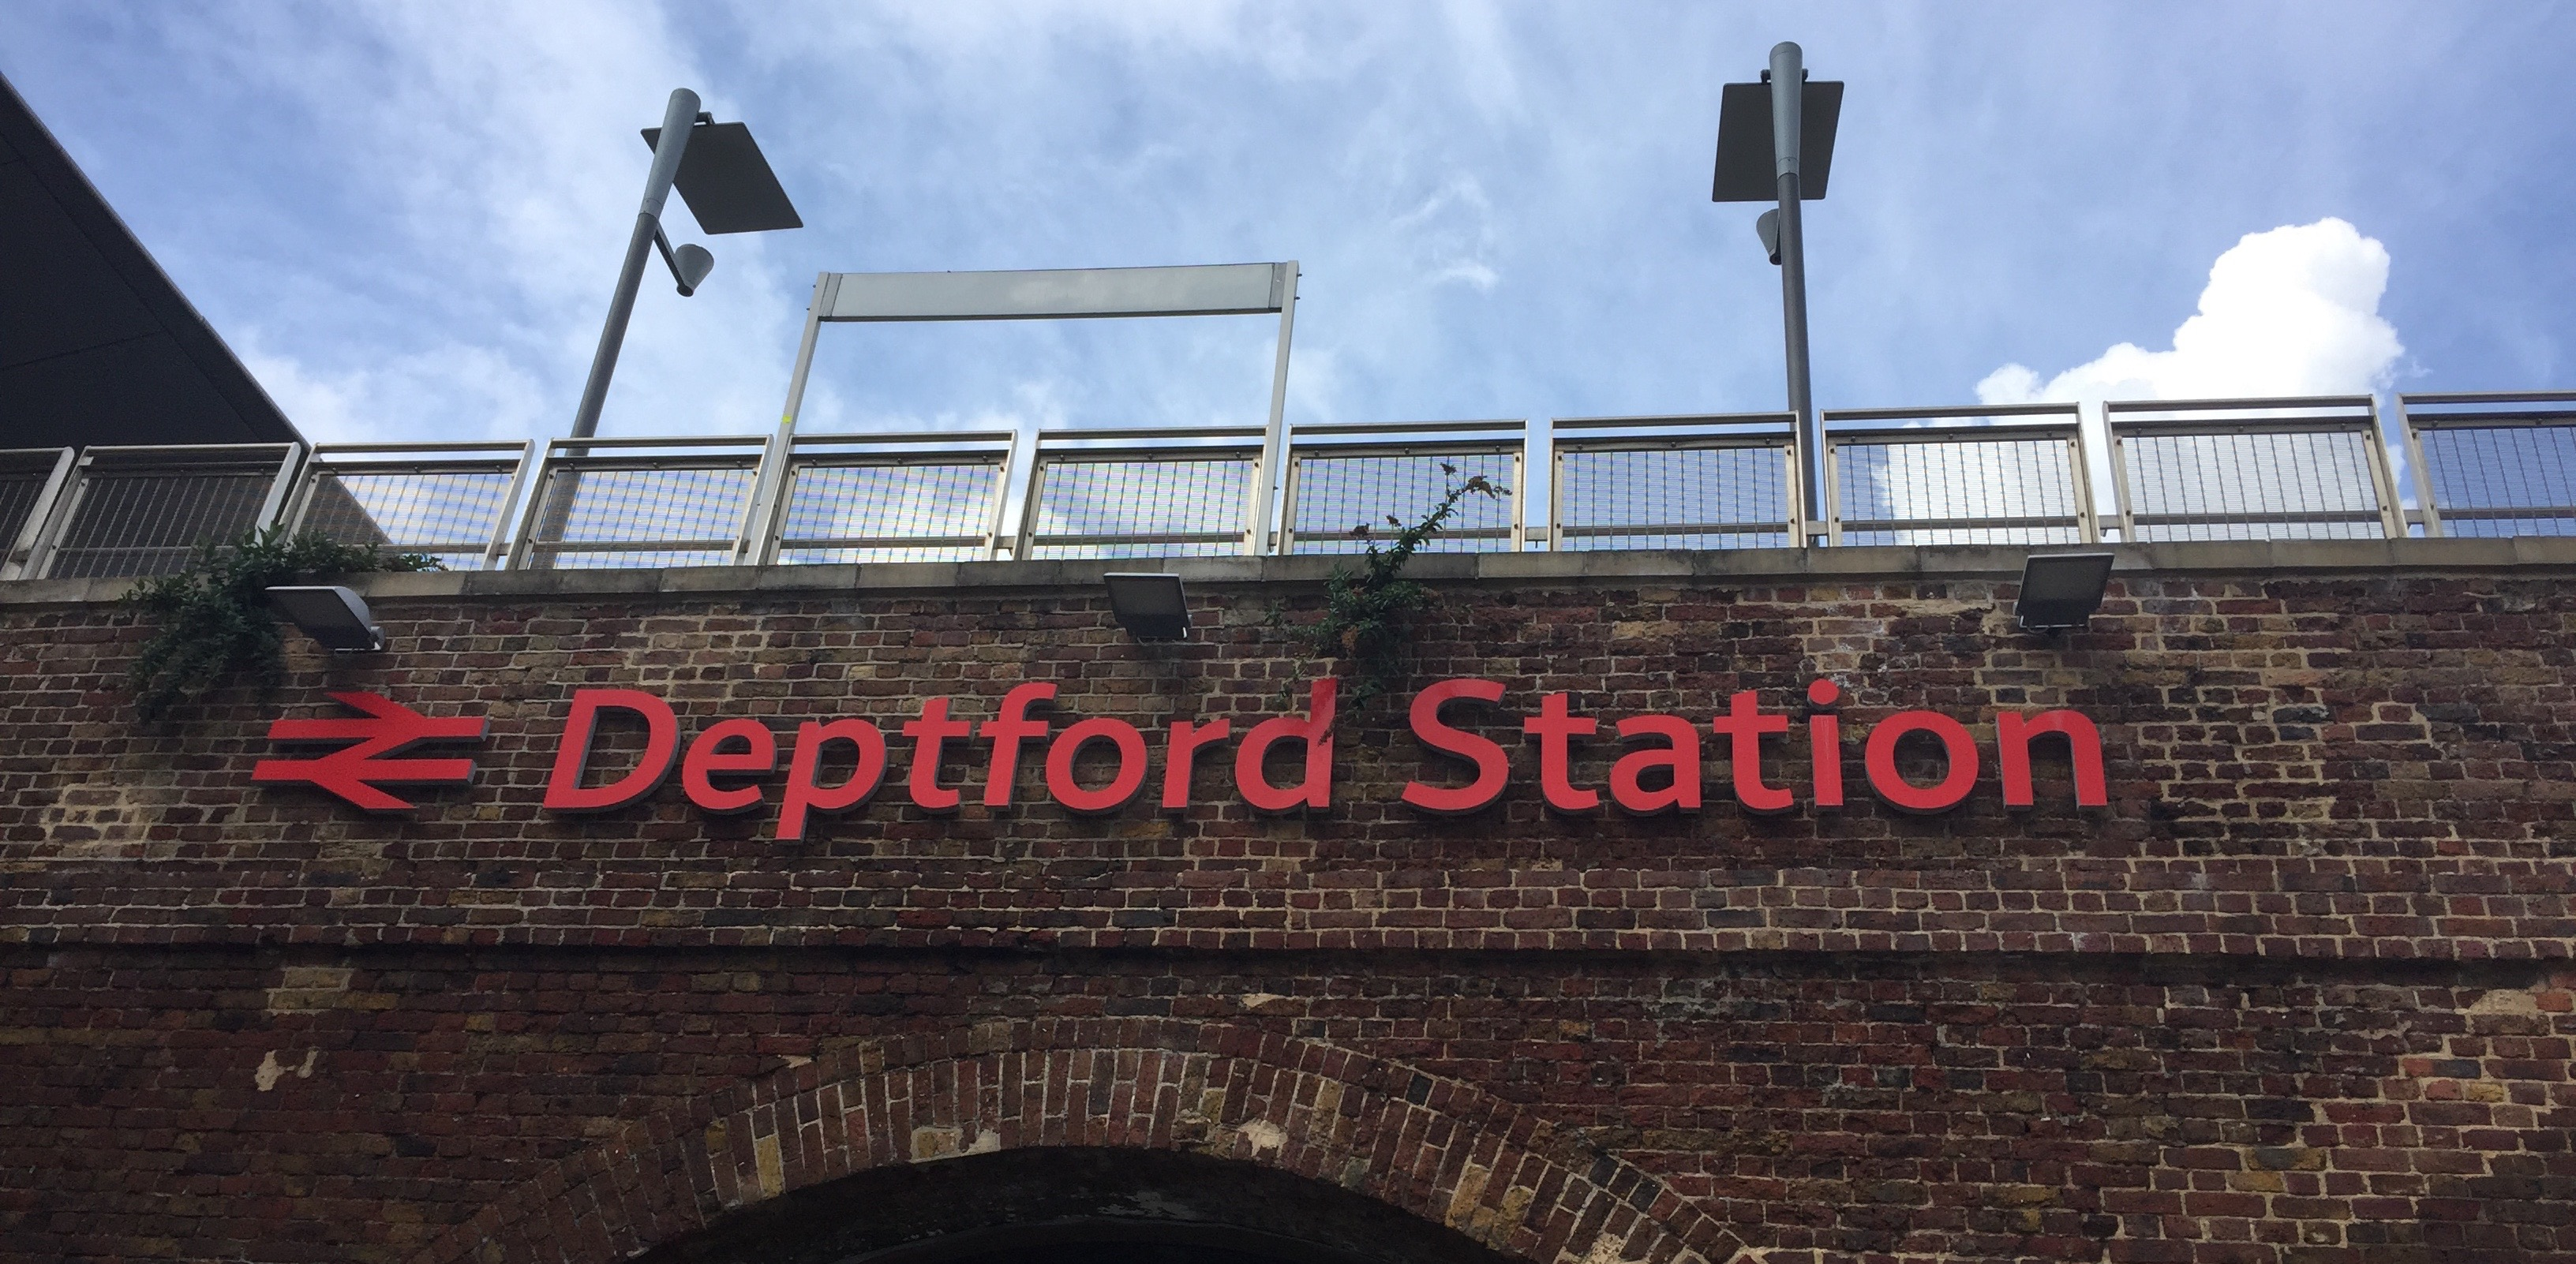 Deptford Station